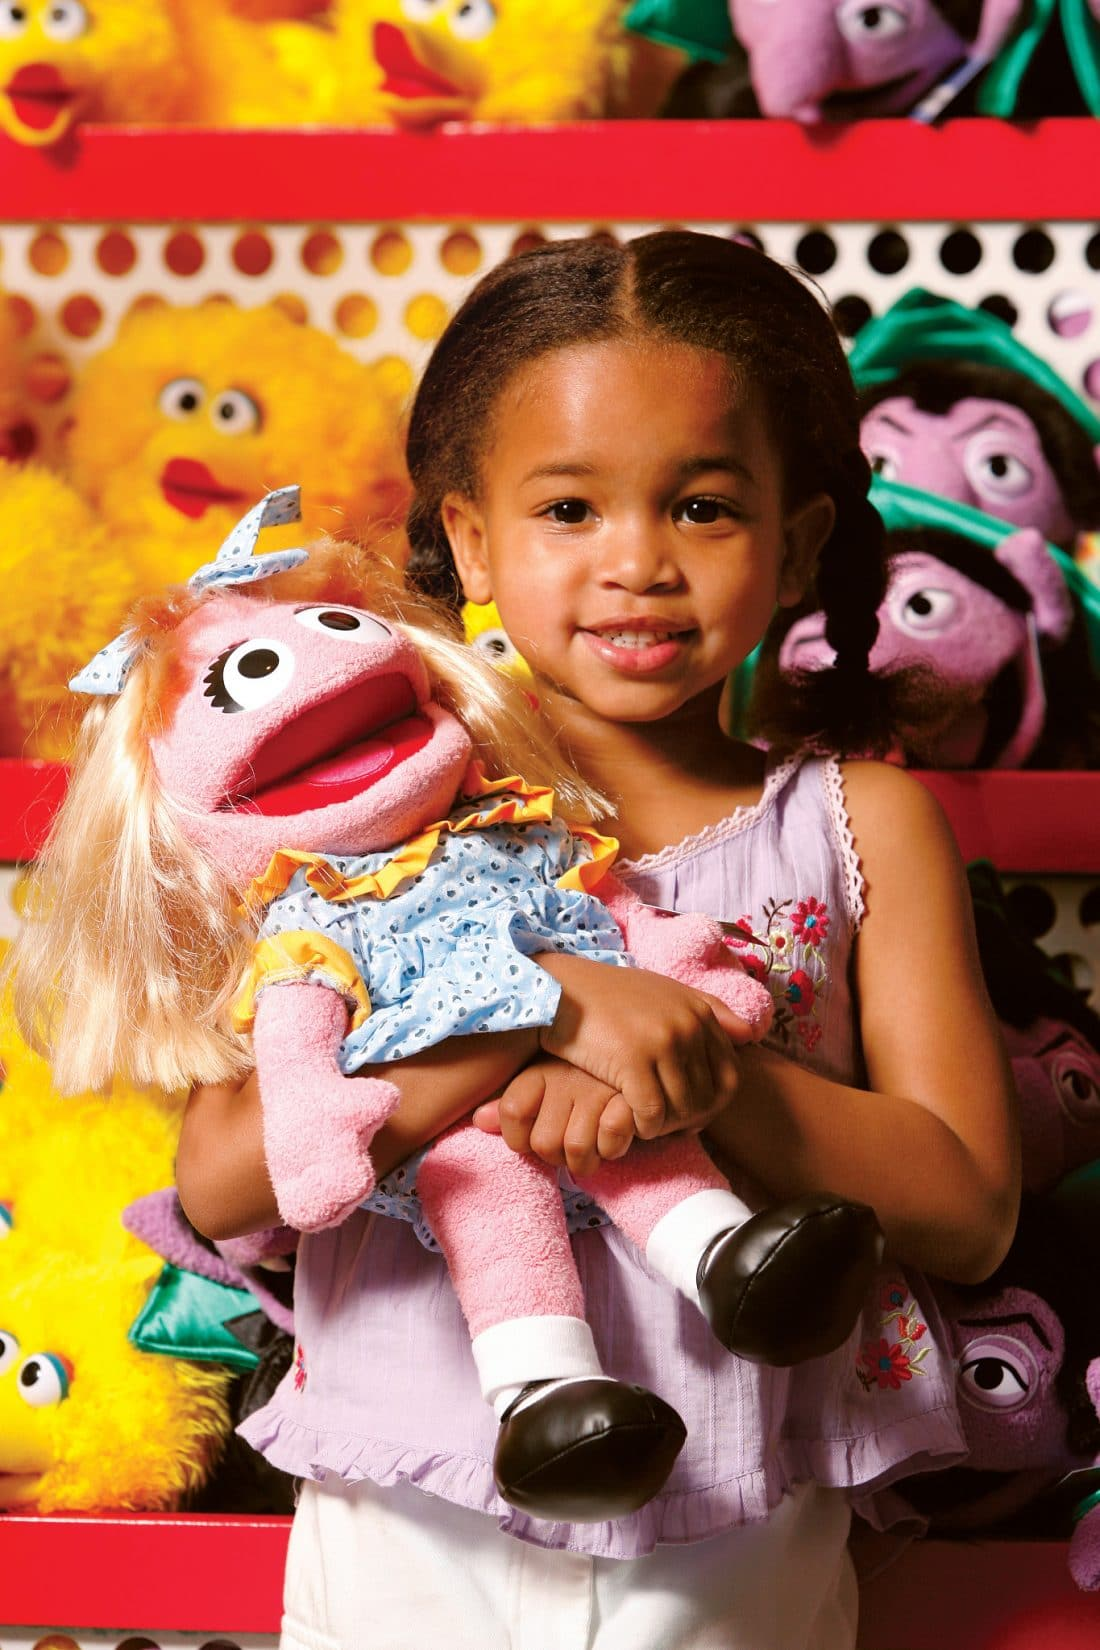 Every weekend from April 13 through May 20, join Elmo, Cookie Monster, Abby Cadabby and everyone's favorite furry friends for fun atSesame Street® Kids' Weekends. Grab your spring time tickets today for some weekend fun.